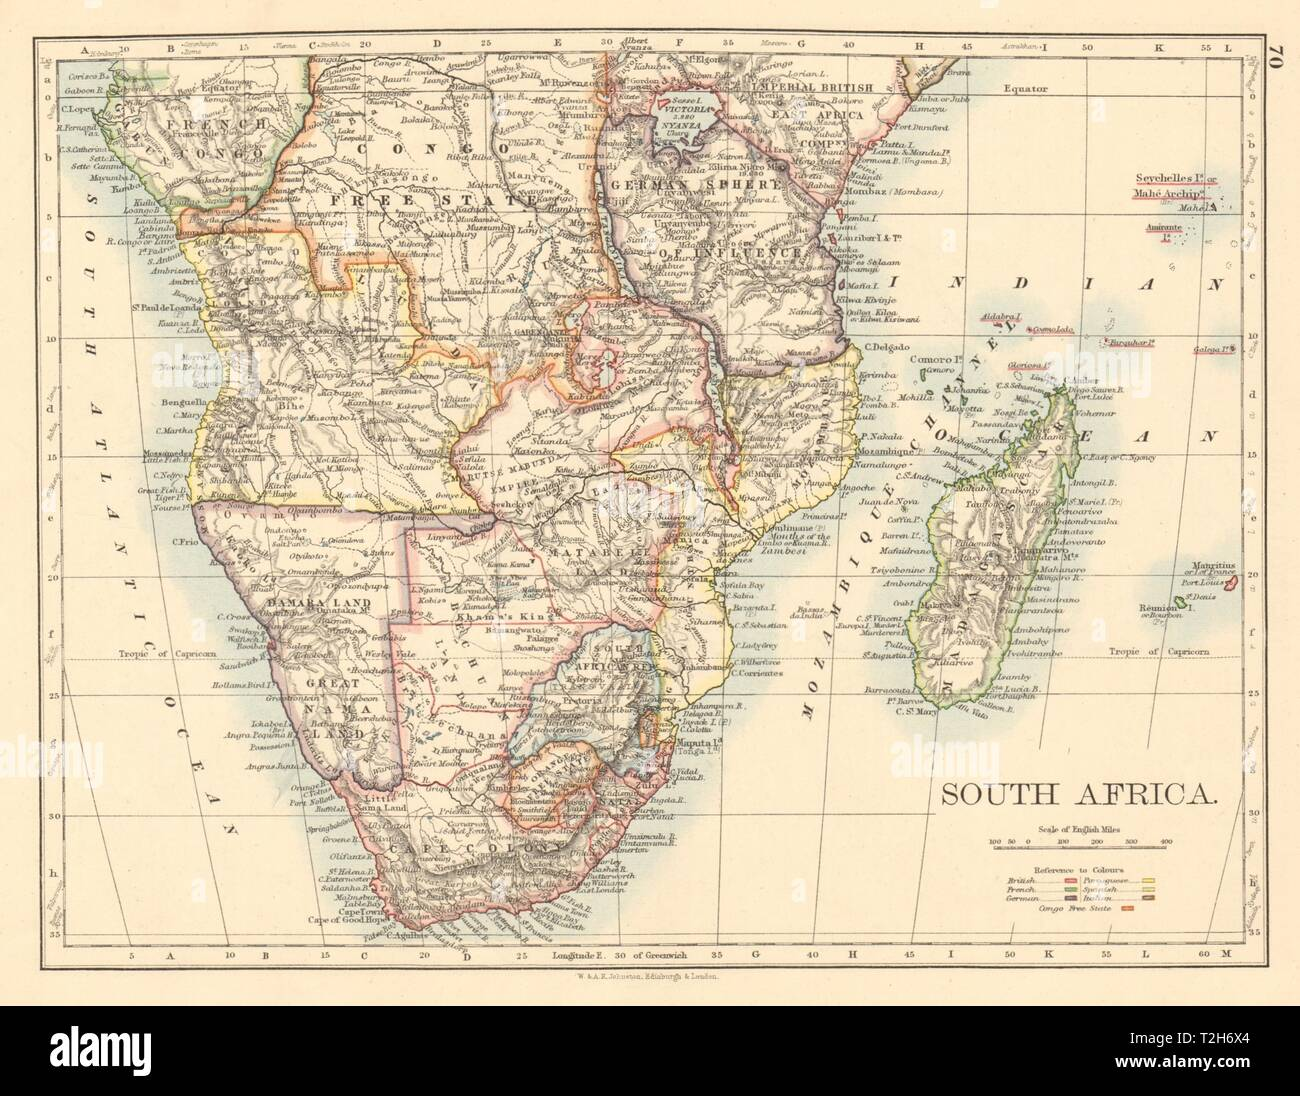 precolonial south africa typology - HD1300×1096